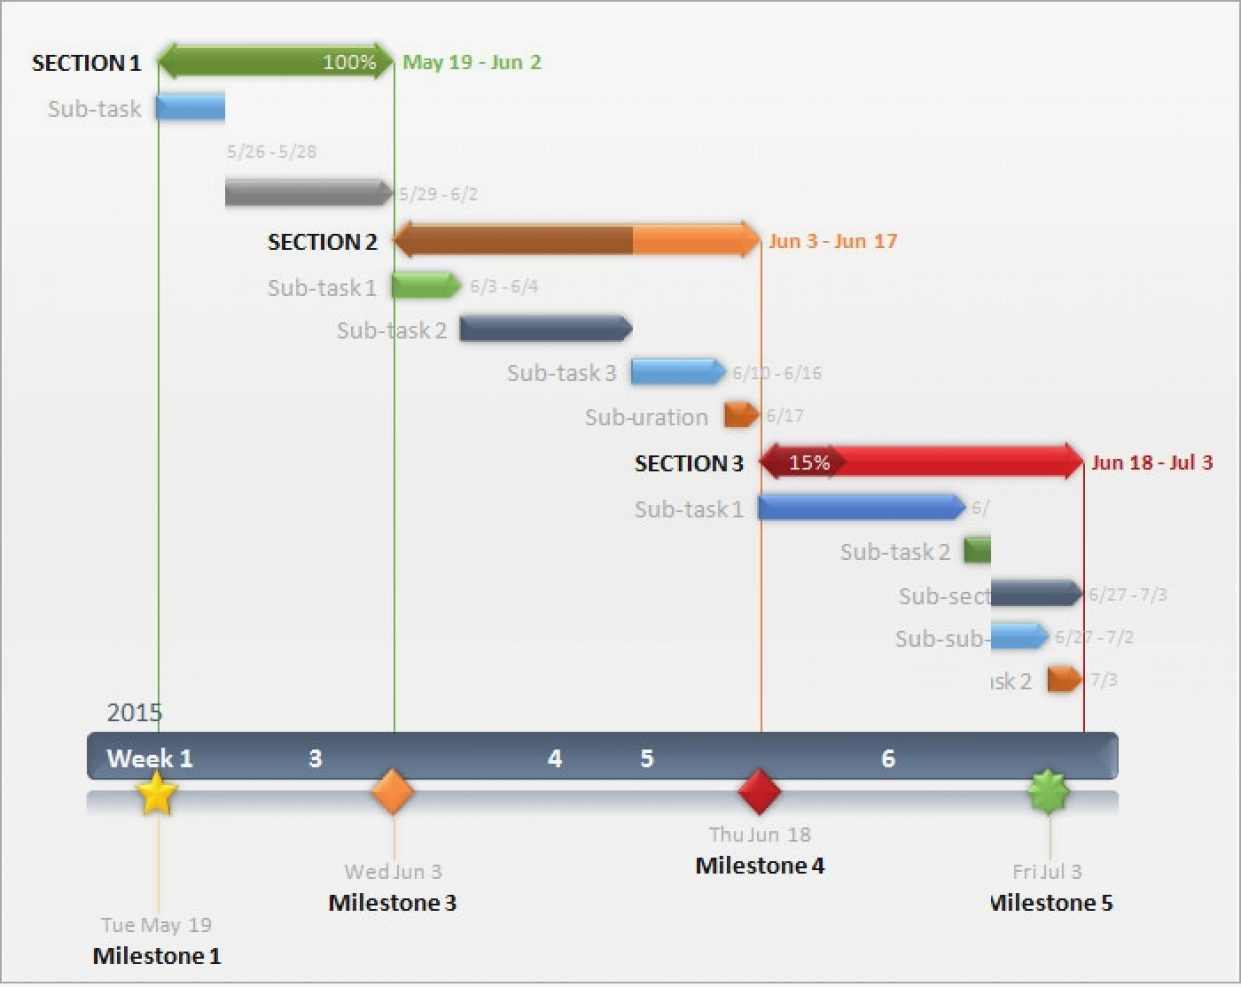 Gantt Chart Template For Mac Well – Yesilev Intended For Gantt Chart Template Mac